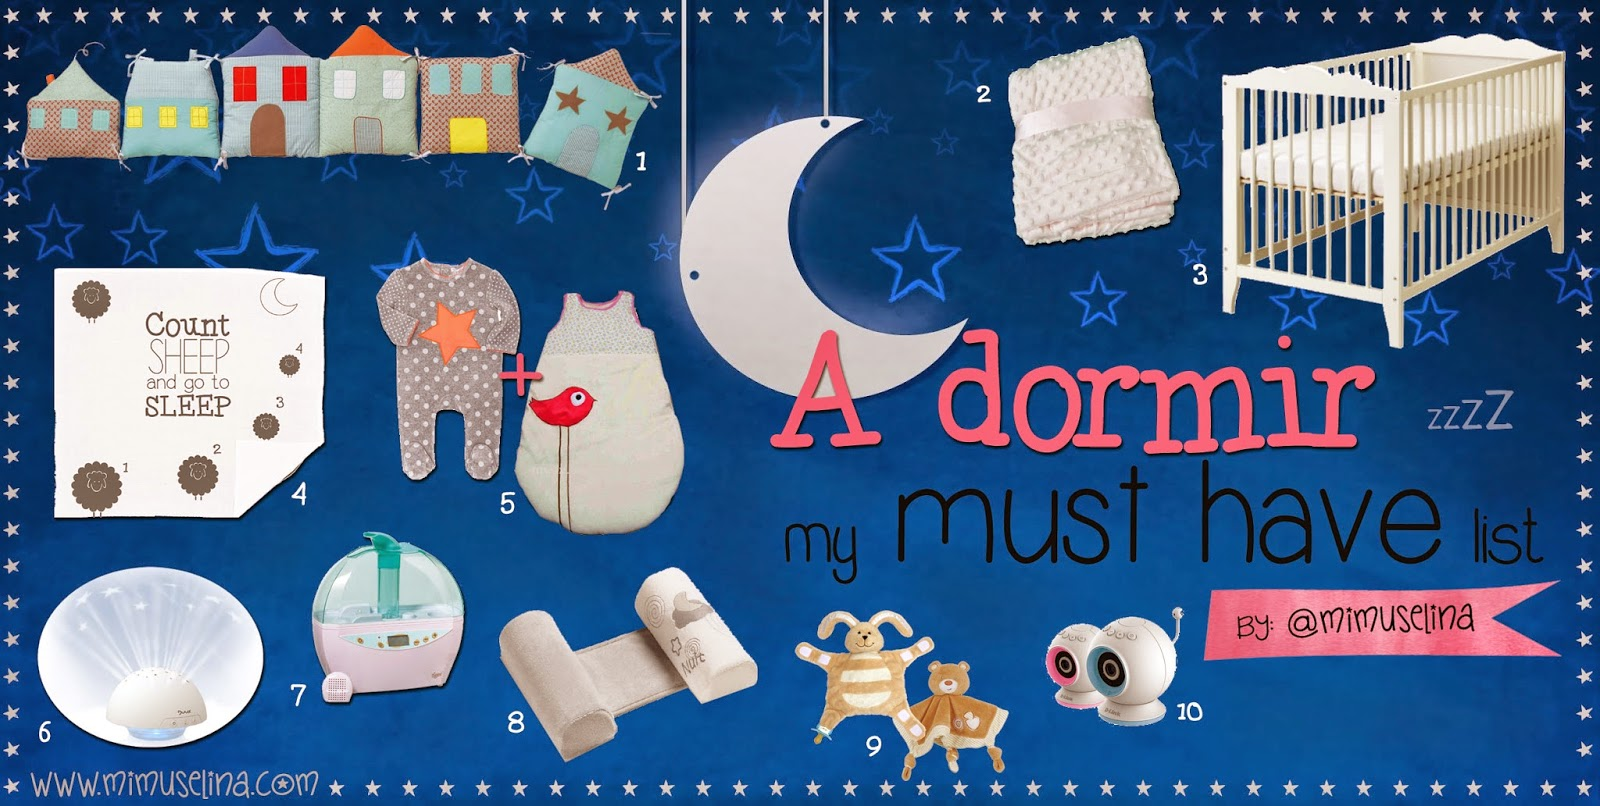 A dormir bebe must have list. Duerme bebe